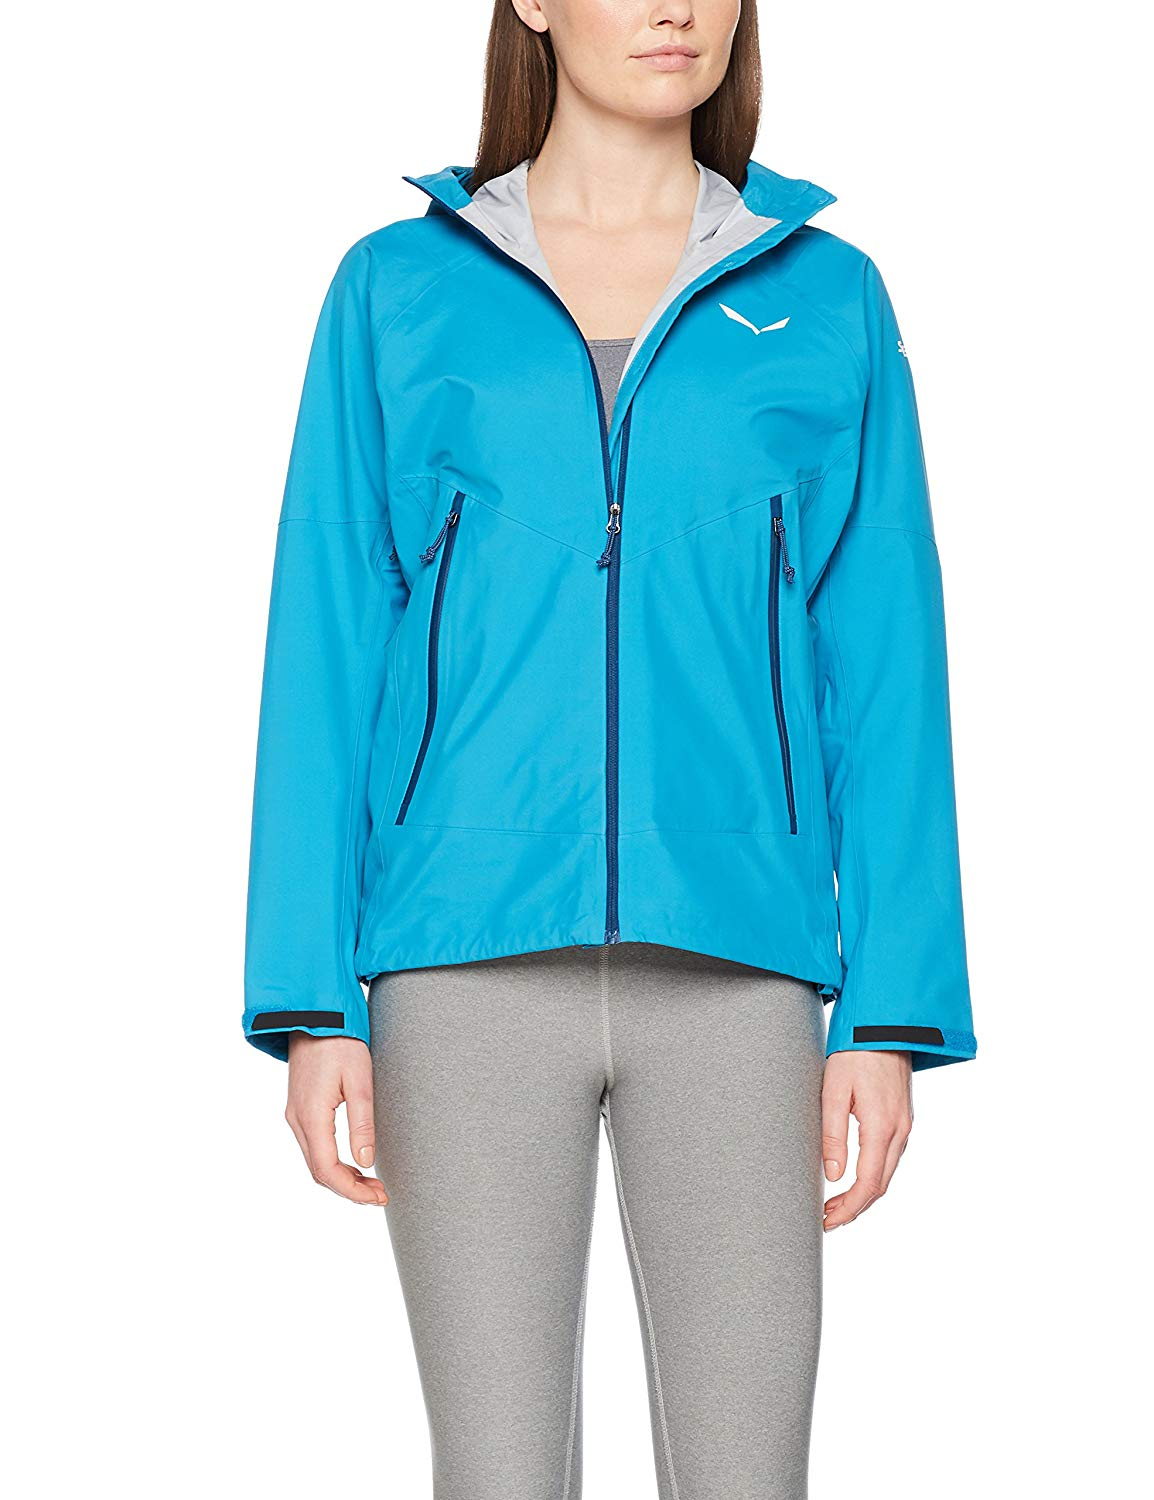 Salewa Damen Sesvenna Softshell Jacke - blue caneel bay - 44